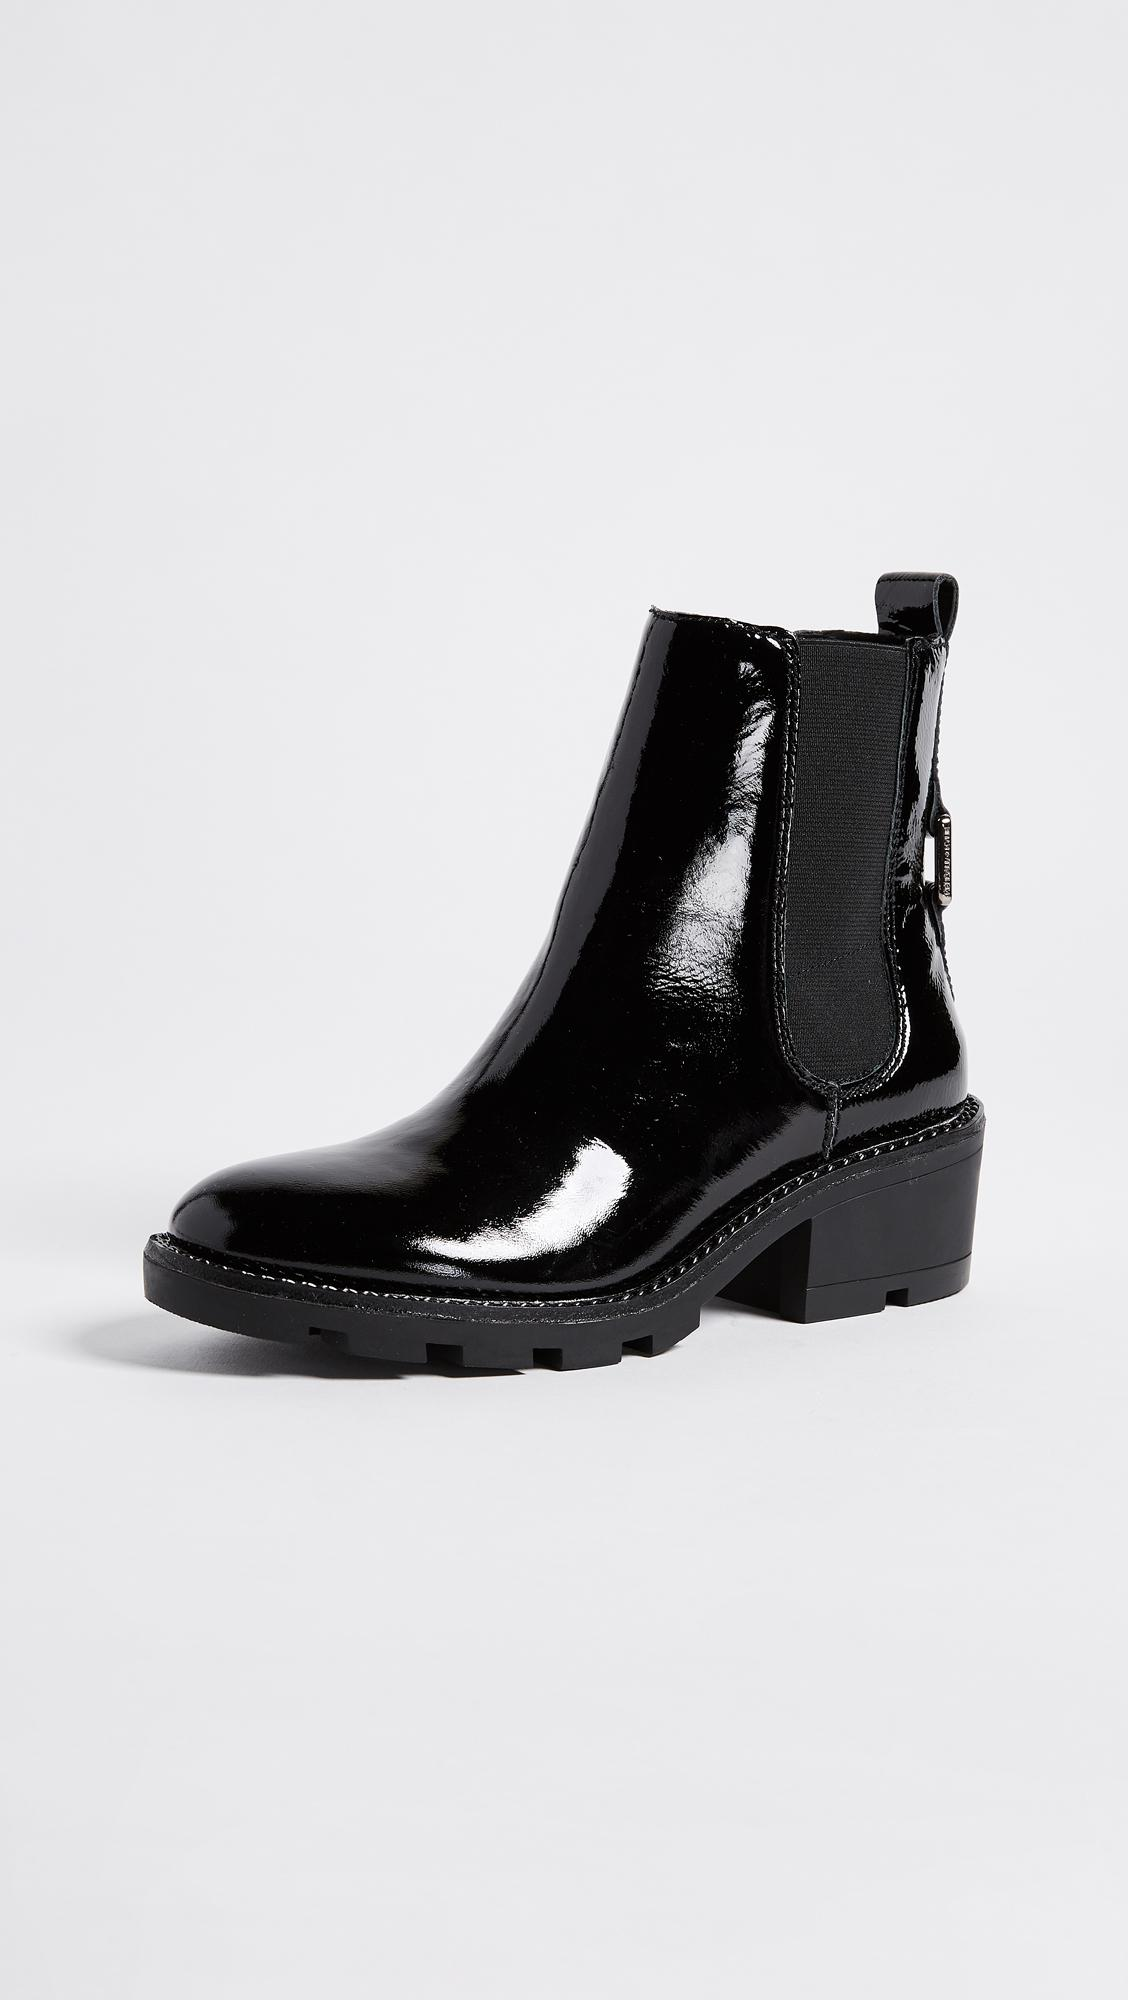 78f8321fa3b Kendall + Kylie Black Porter Chelsea Booties